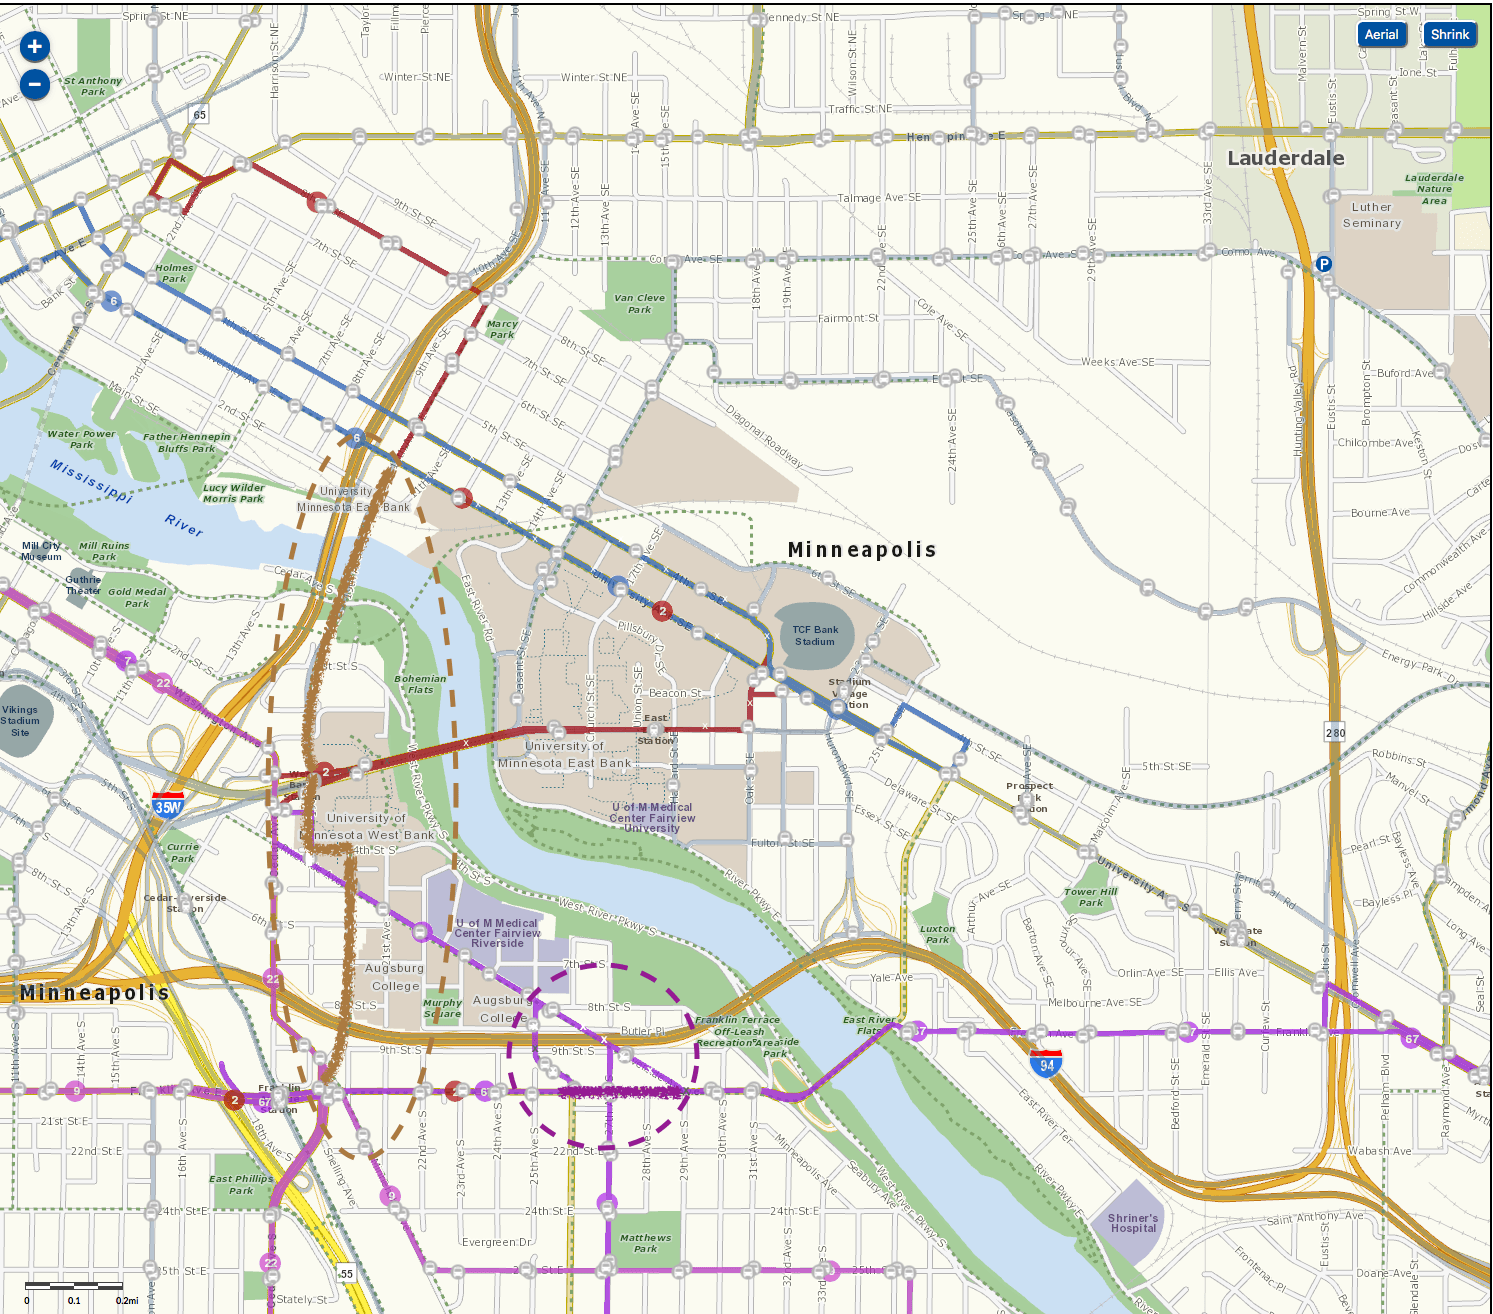 Transit routes with proposed reconfiguration shown for Routes 2 (brown) and 67 (purple).